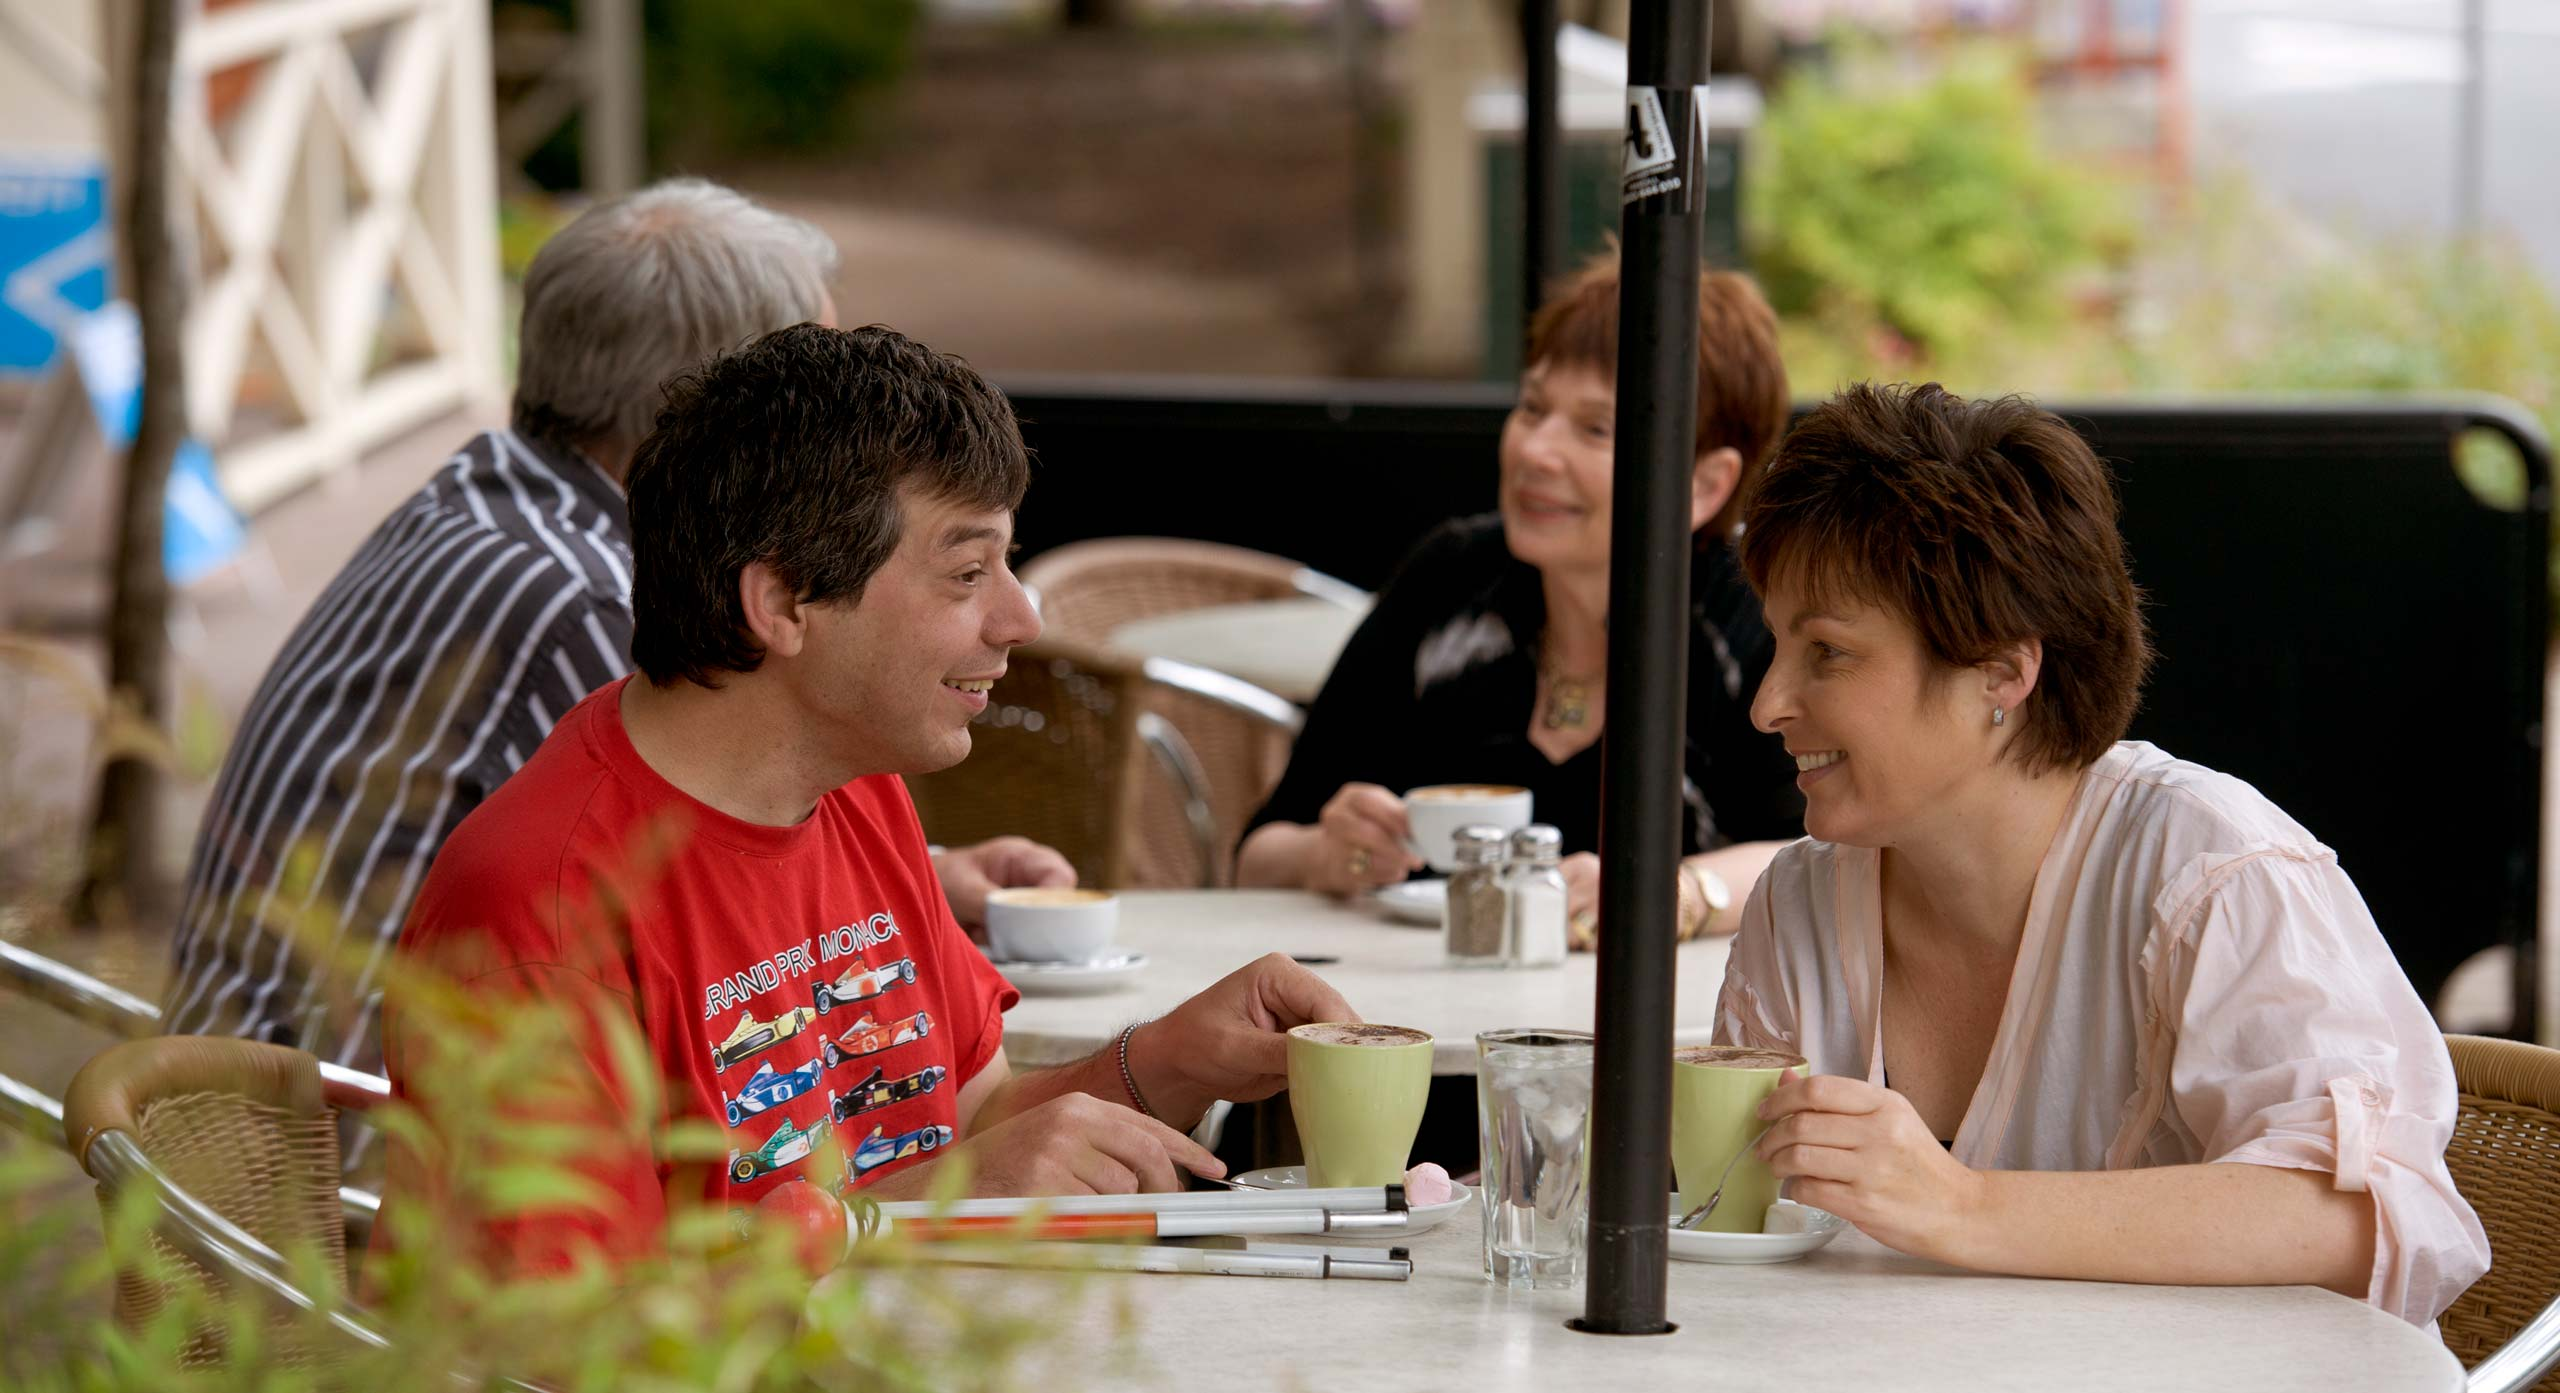 A man and woman chatting over coffee. They are both smiling.